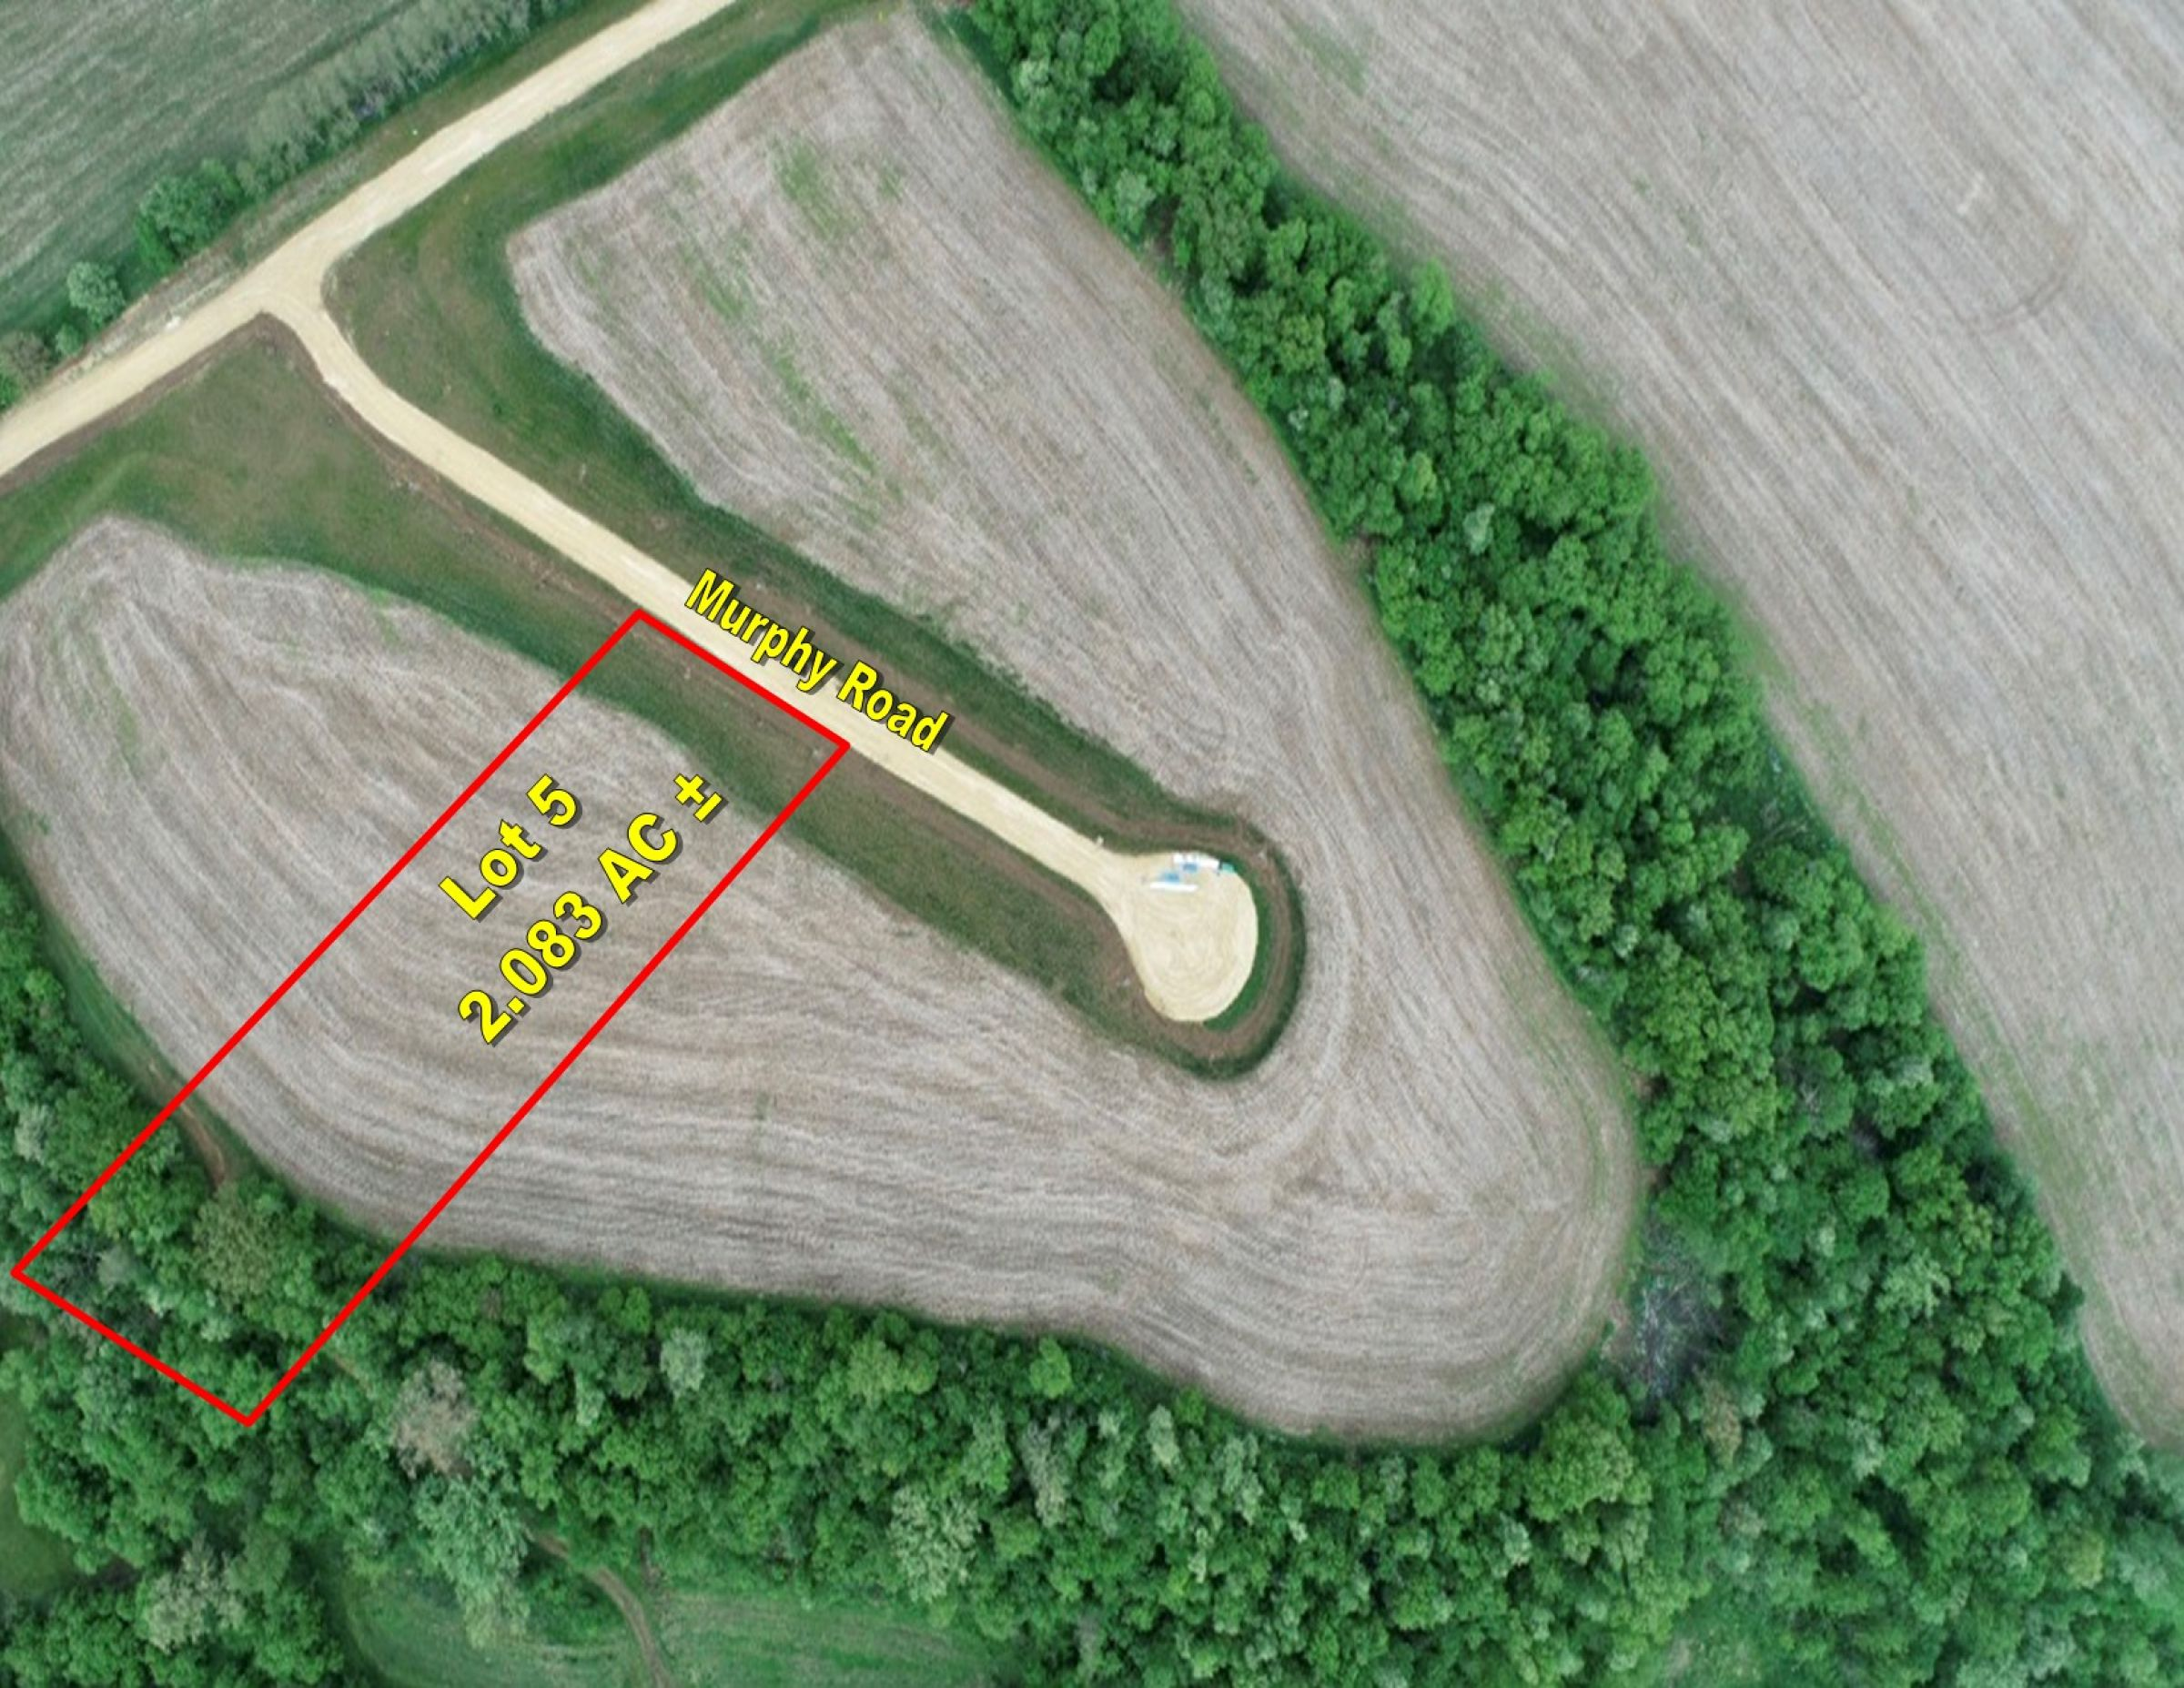 land-iowa-county-wisconsin-2-acres-listing-number-15538-0-2021-05-21-030004.jpg